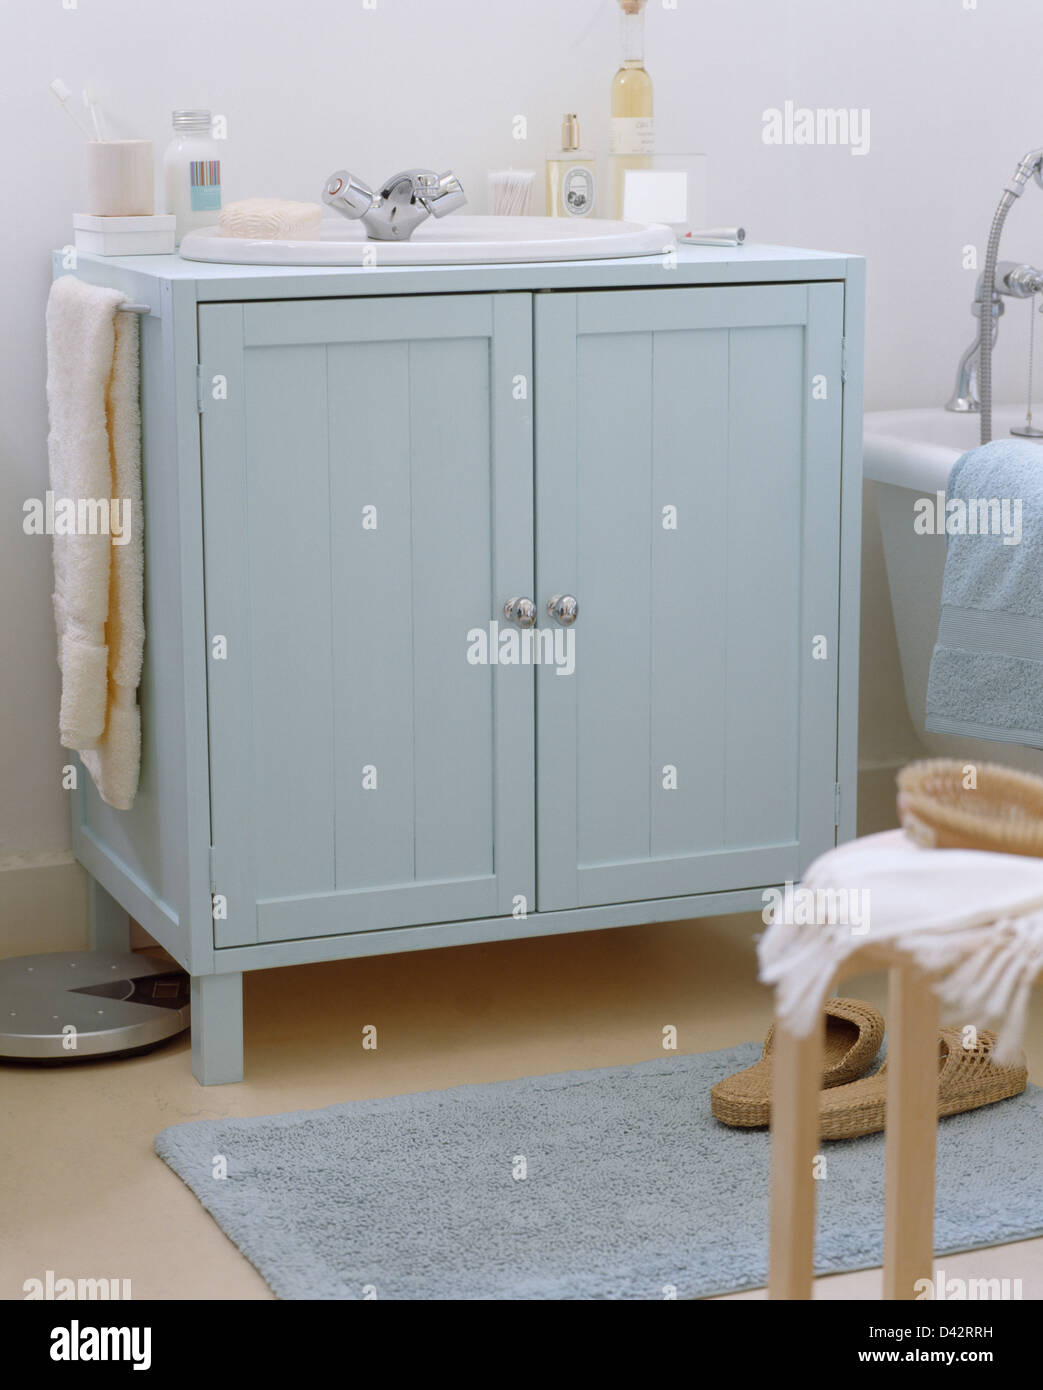 Pastel Blue Cupboard With Built In Basin In Simple White ...